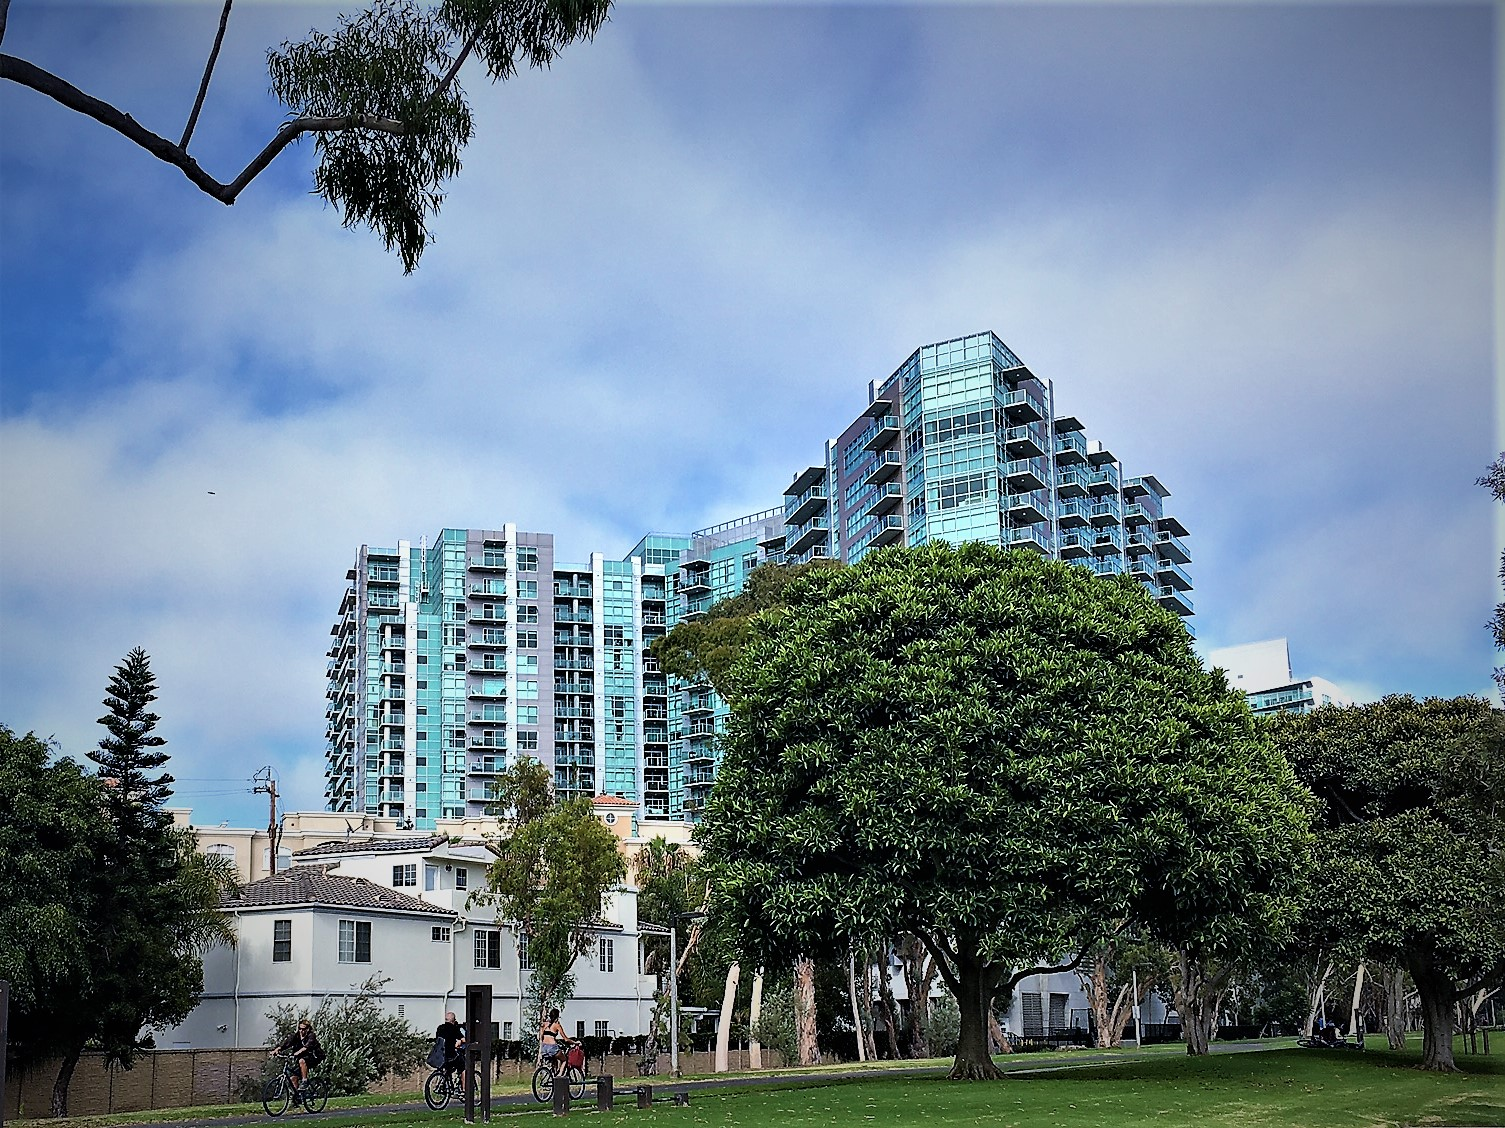 Regatta Condos Marina Del Rey For Sale or Lease